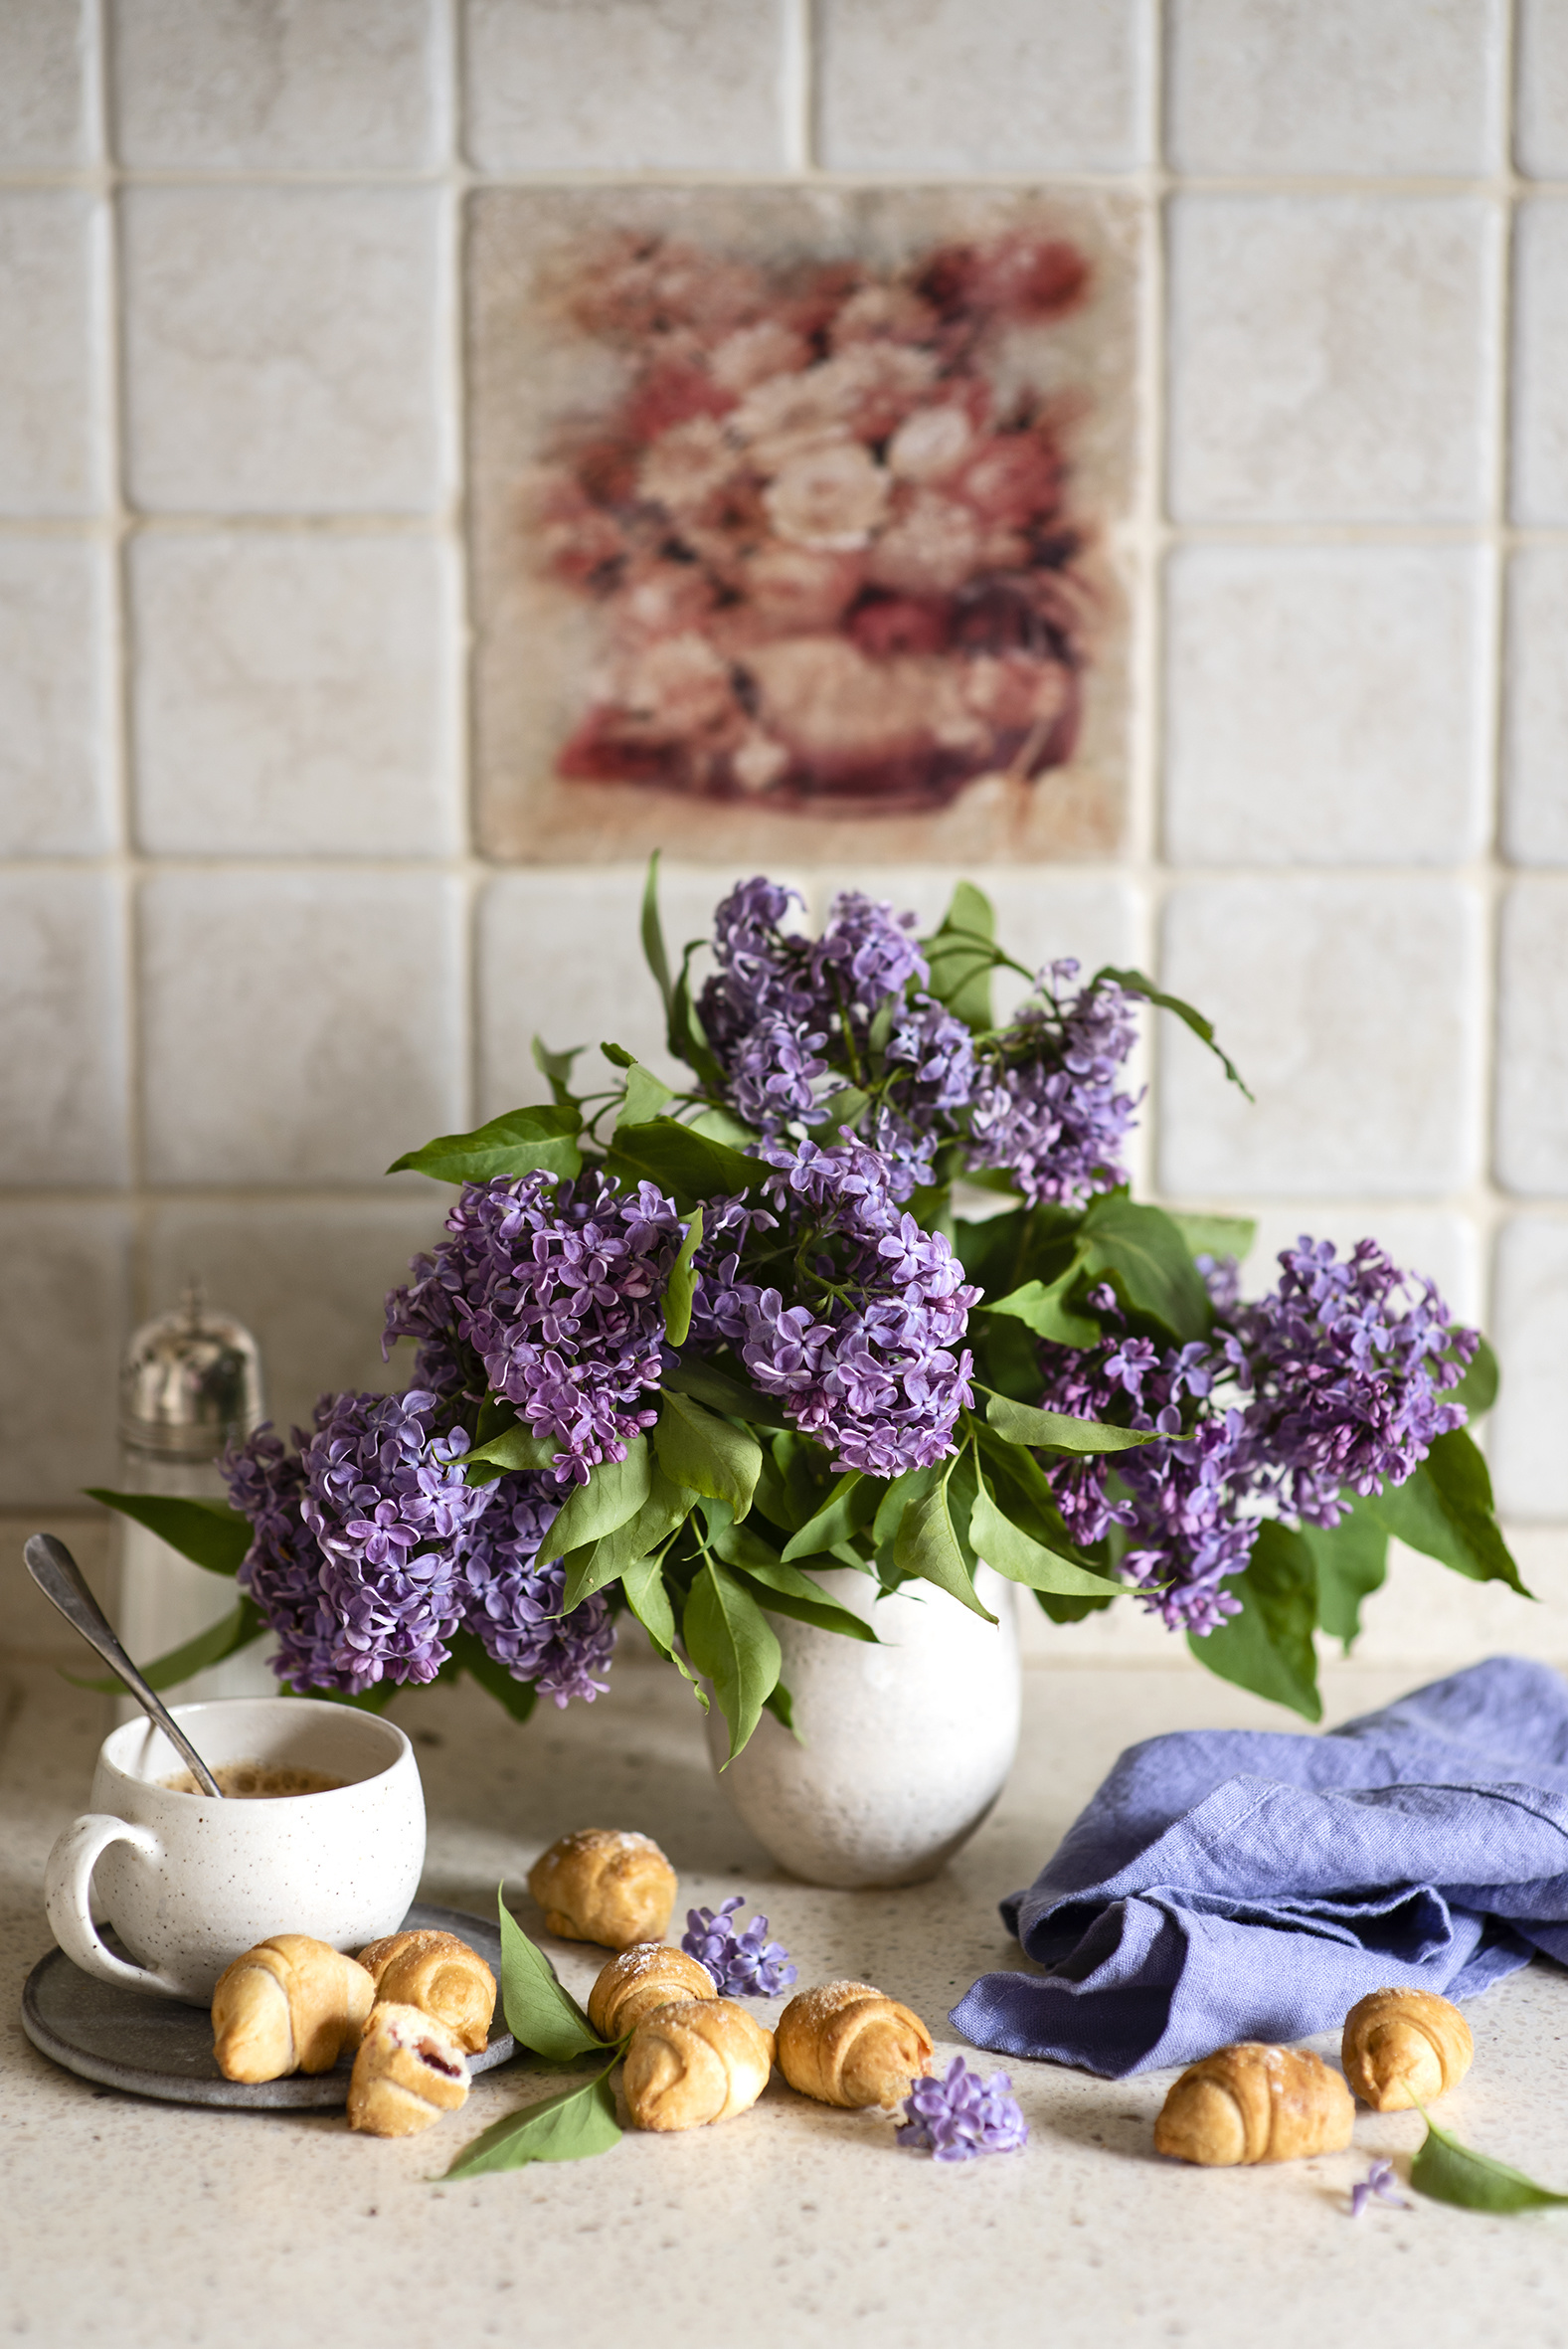 Picture Croissant Flowers Syringa Cup Food Vase Still-life  for Mobile phone Lilac flower